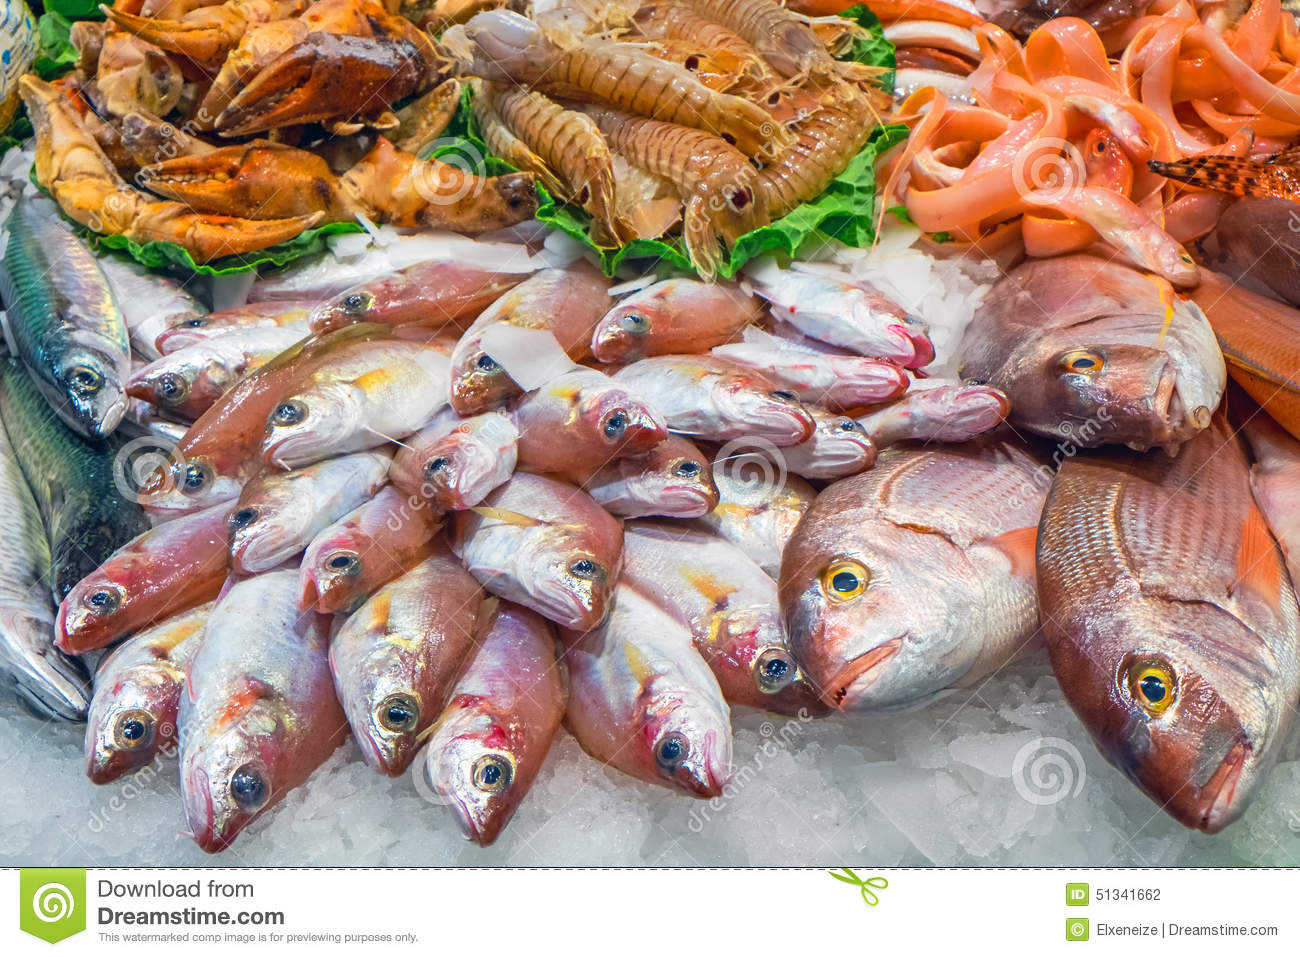 Tasty fish and seafood stock photo image 51341662 for Fish and seafood